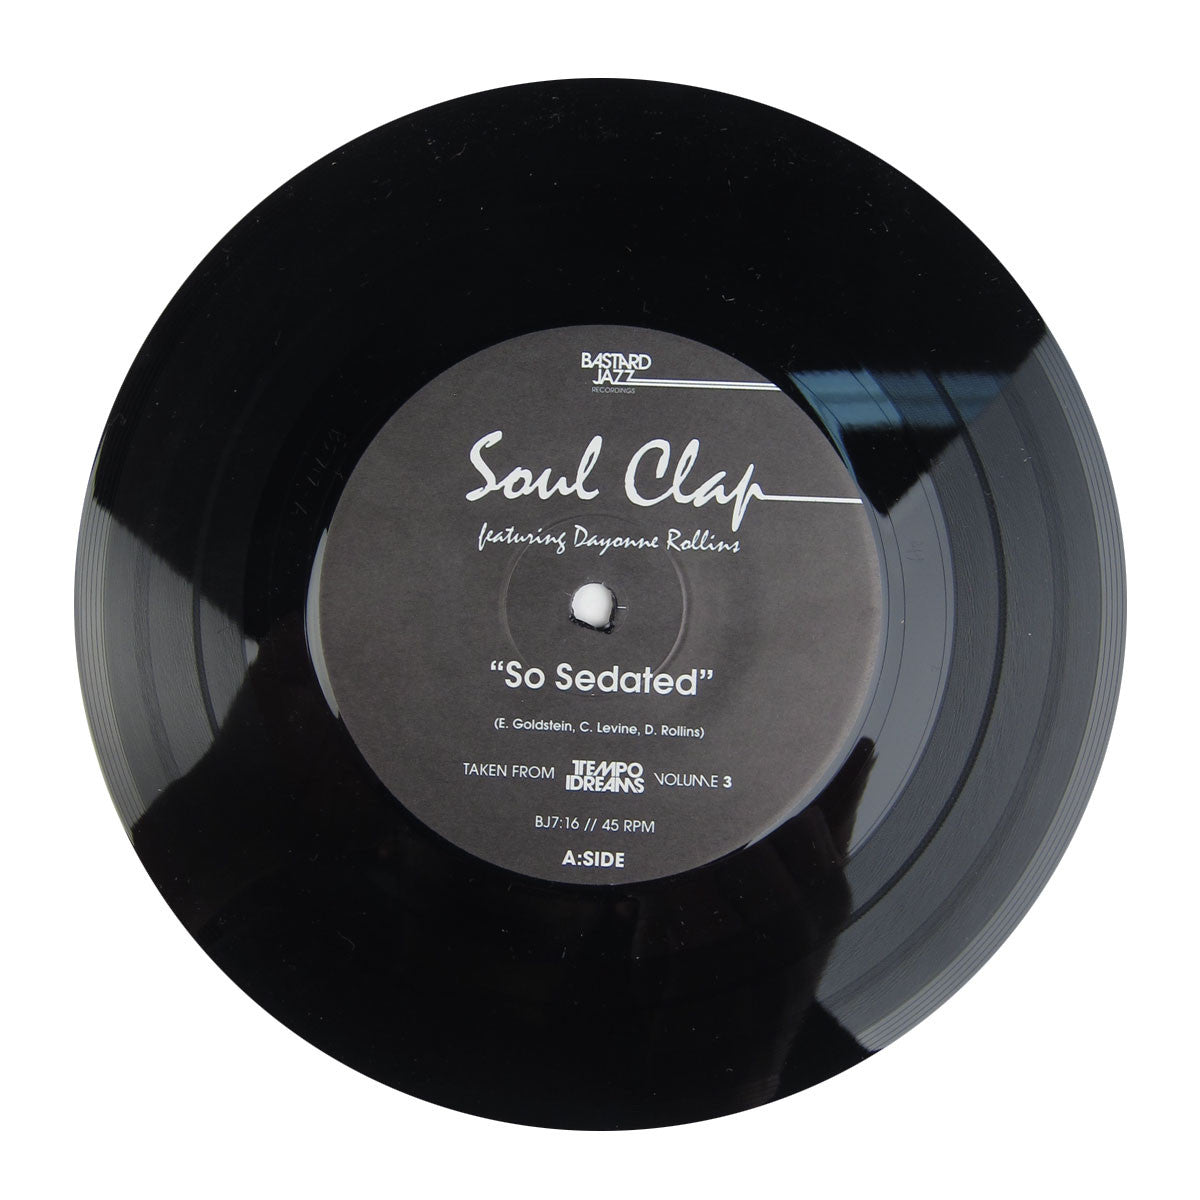 Soul Clap / Sphynx: So Sedated / Azul (Tempo Dreams Vol.3) Vinyl 7""